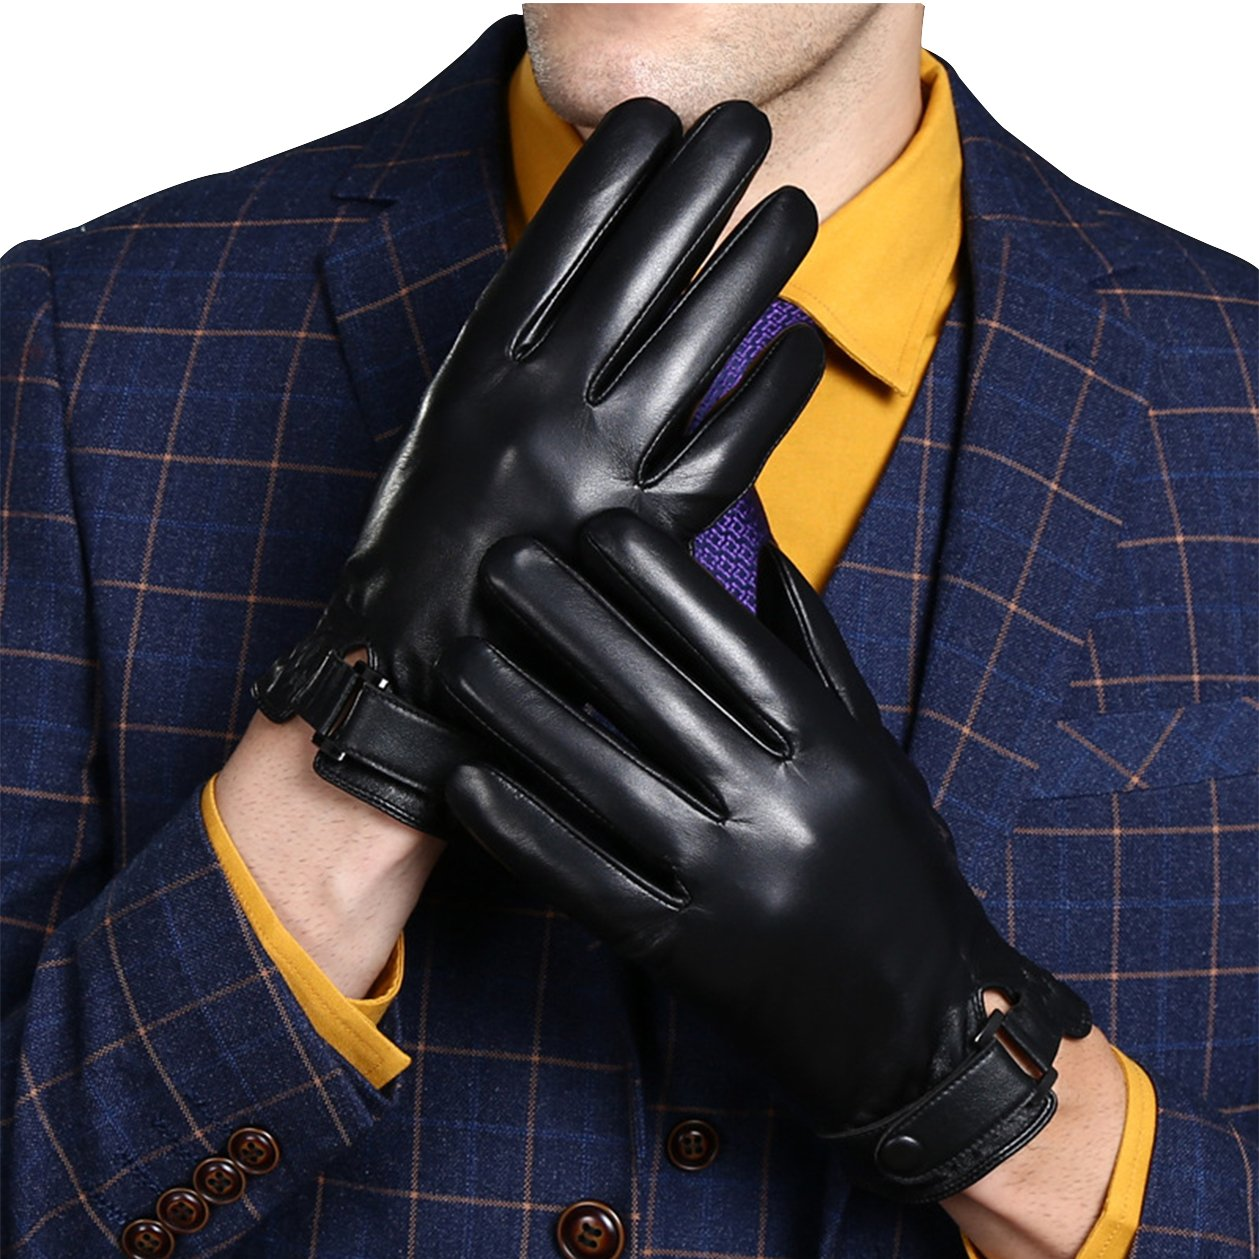 gloves leather Cashmere Lining touch screen business gloves[2XL, black]